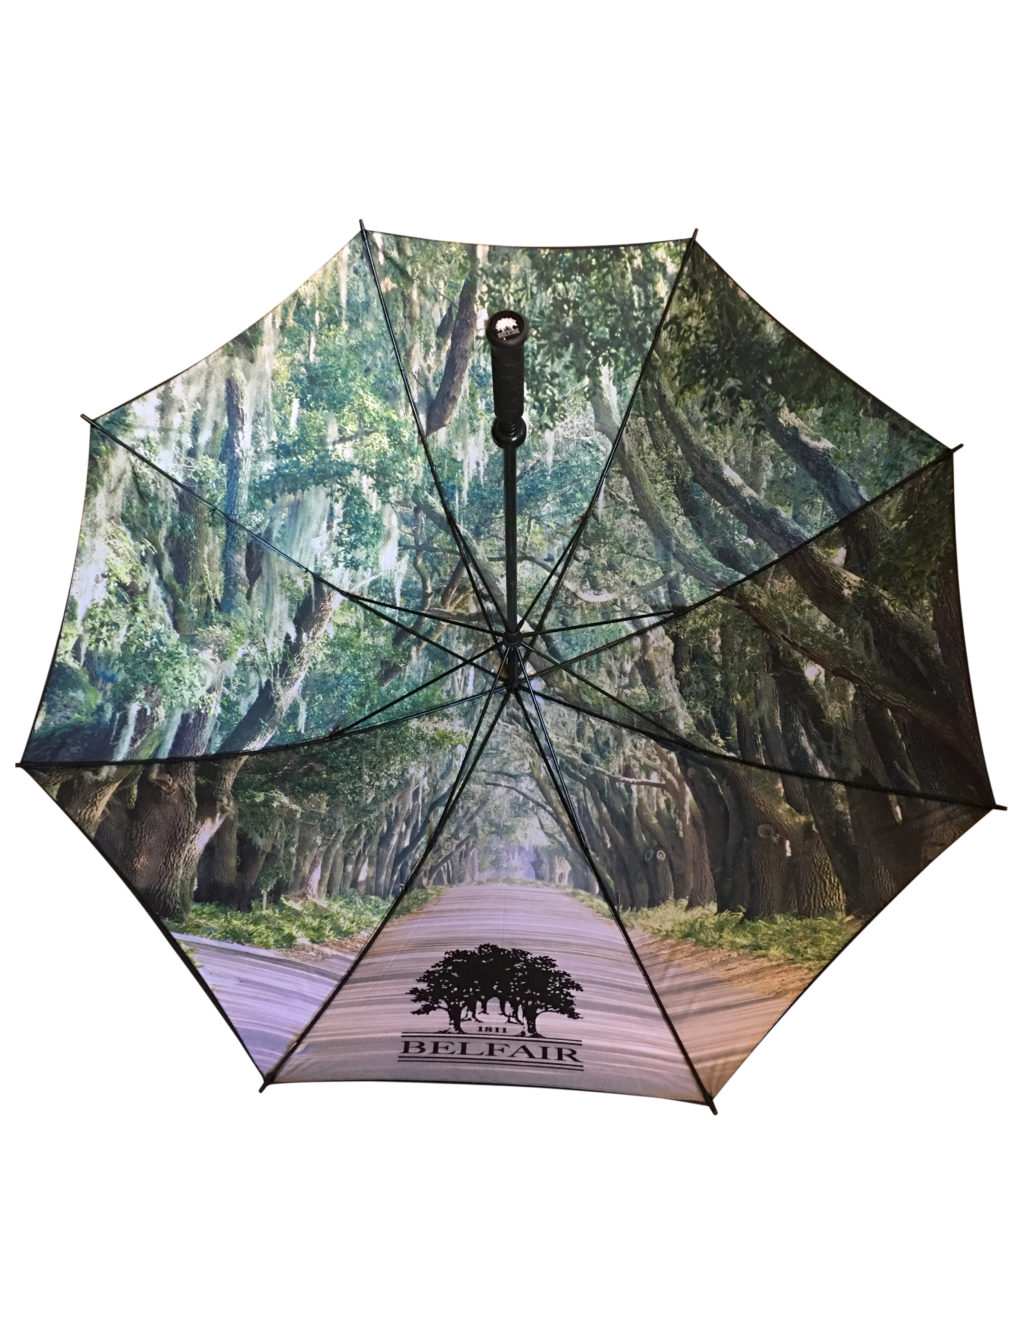 digitally printed tree arch on underside of branded umbrella